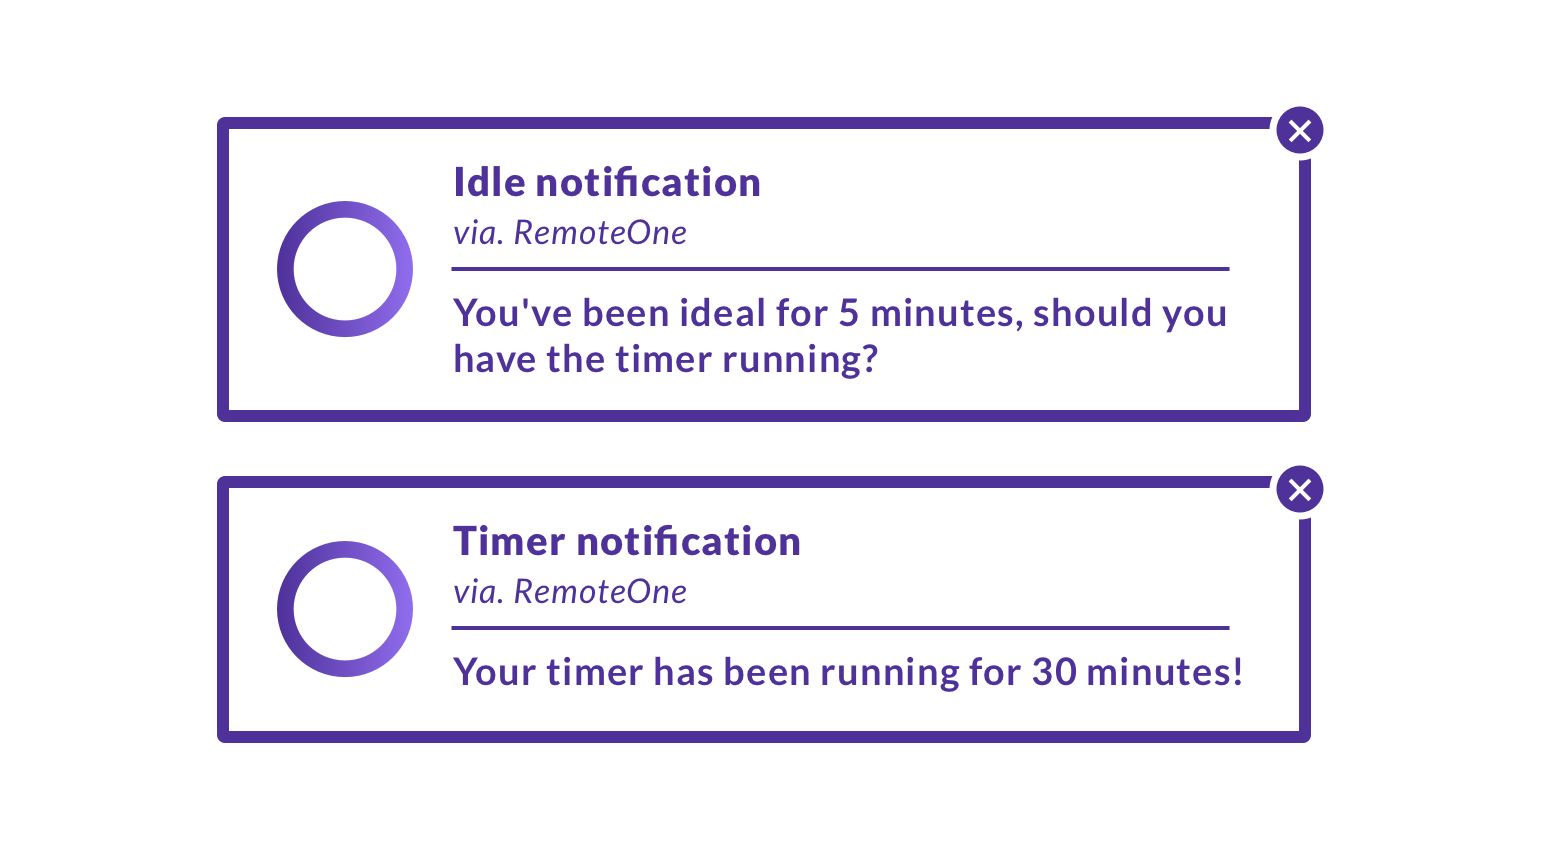 Time tracking notifications